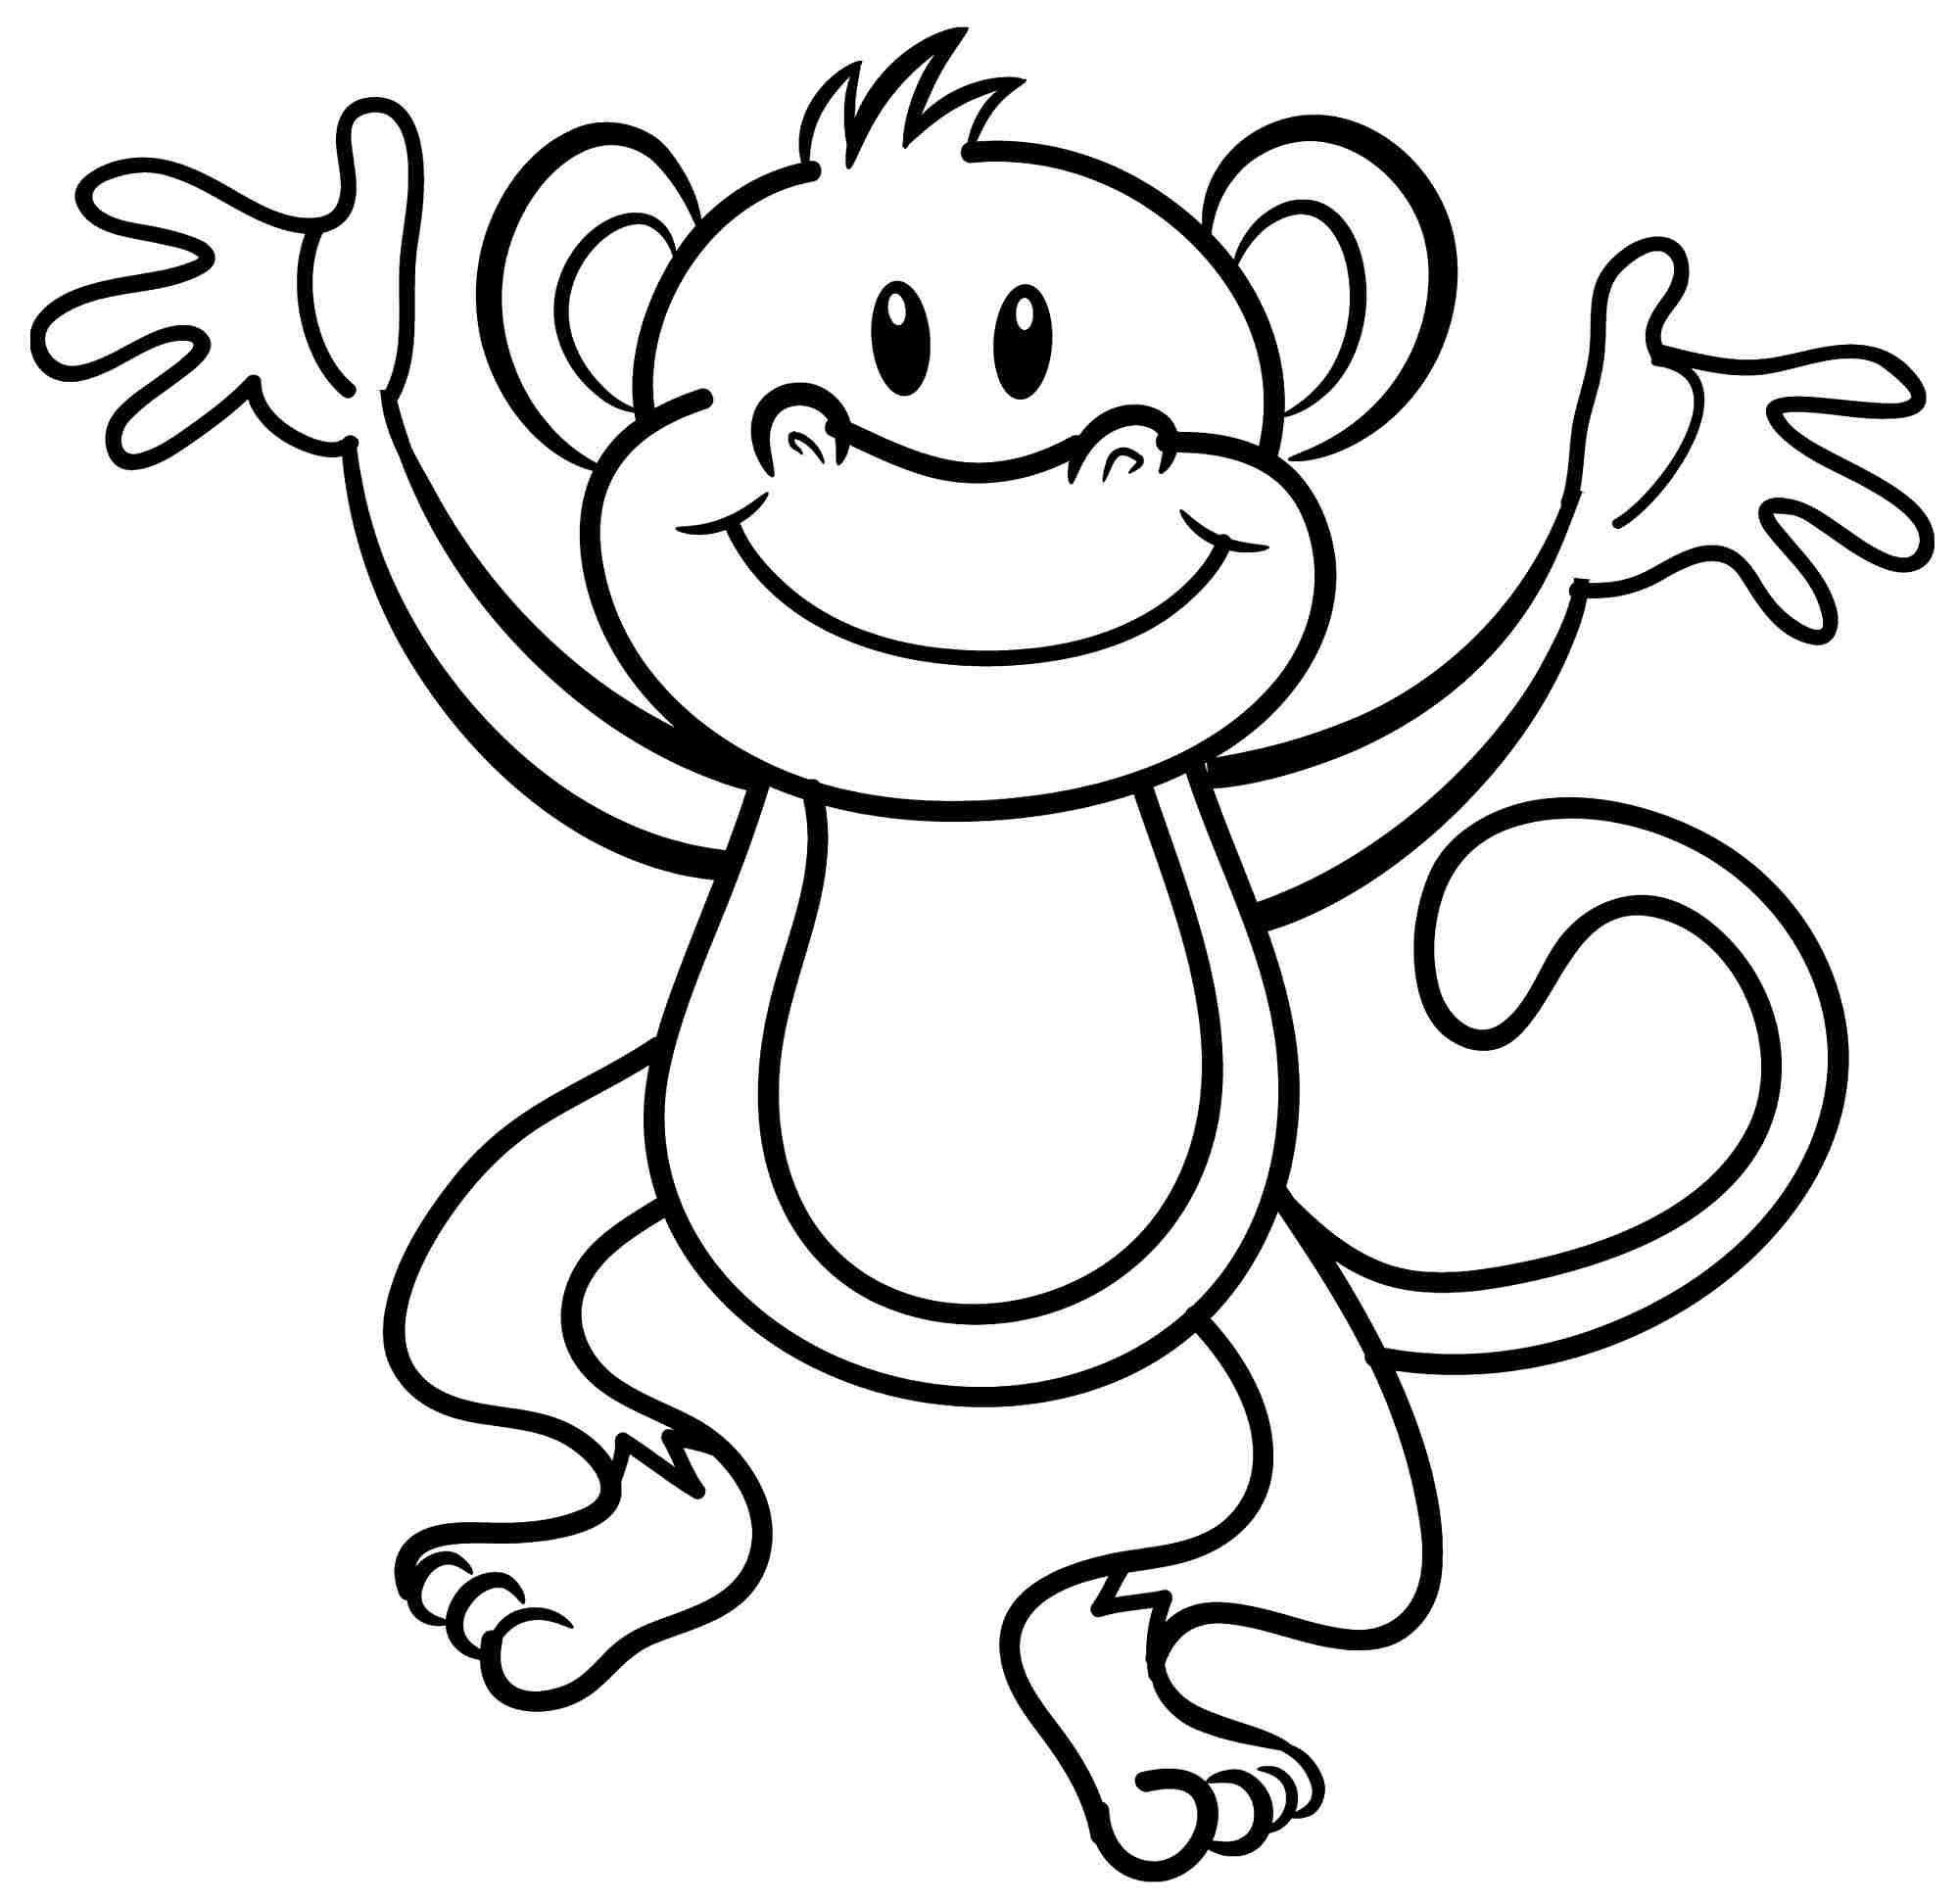 free coloring pages animals image 46 for kids - Coloring Pages Animals